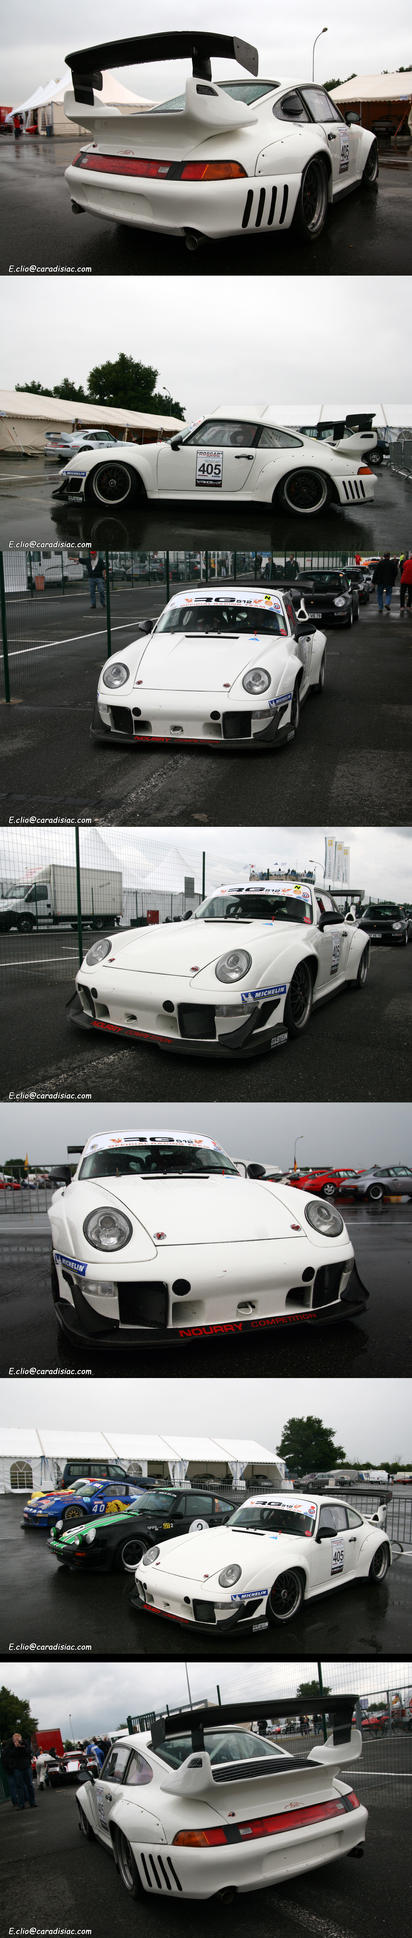 Porsche 993 911 GT2 Reference by Pisci